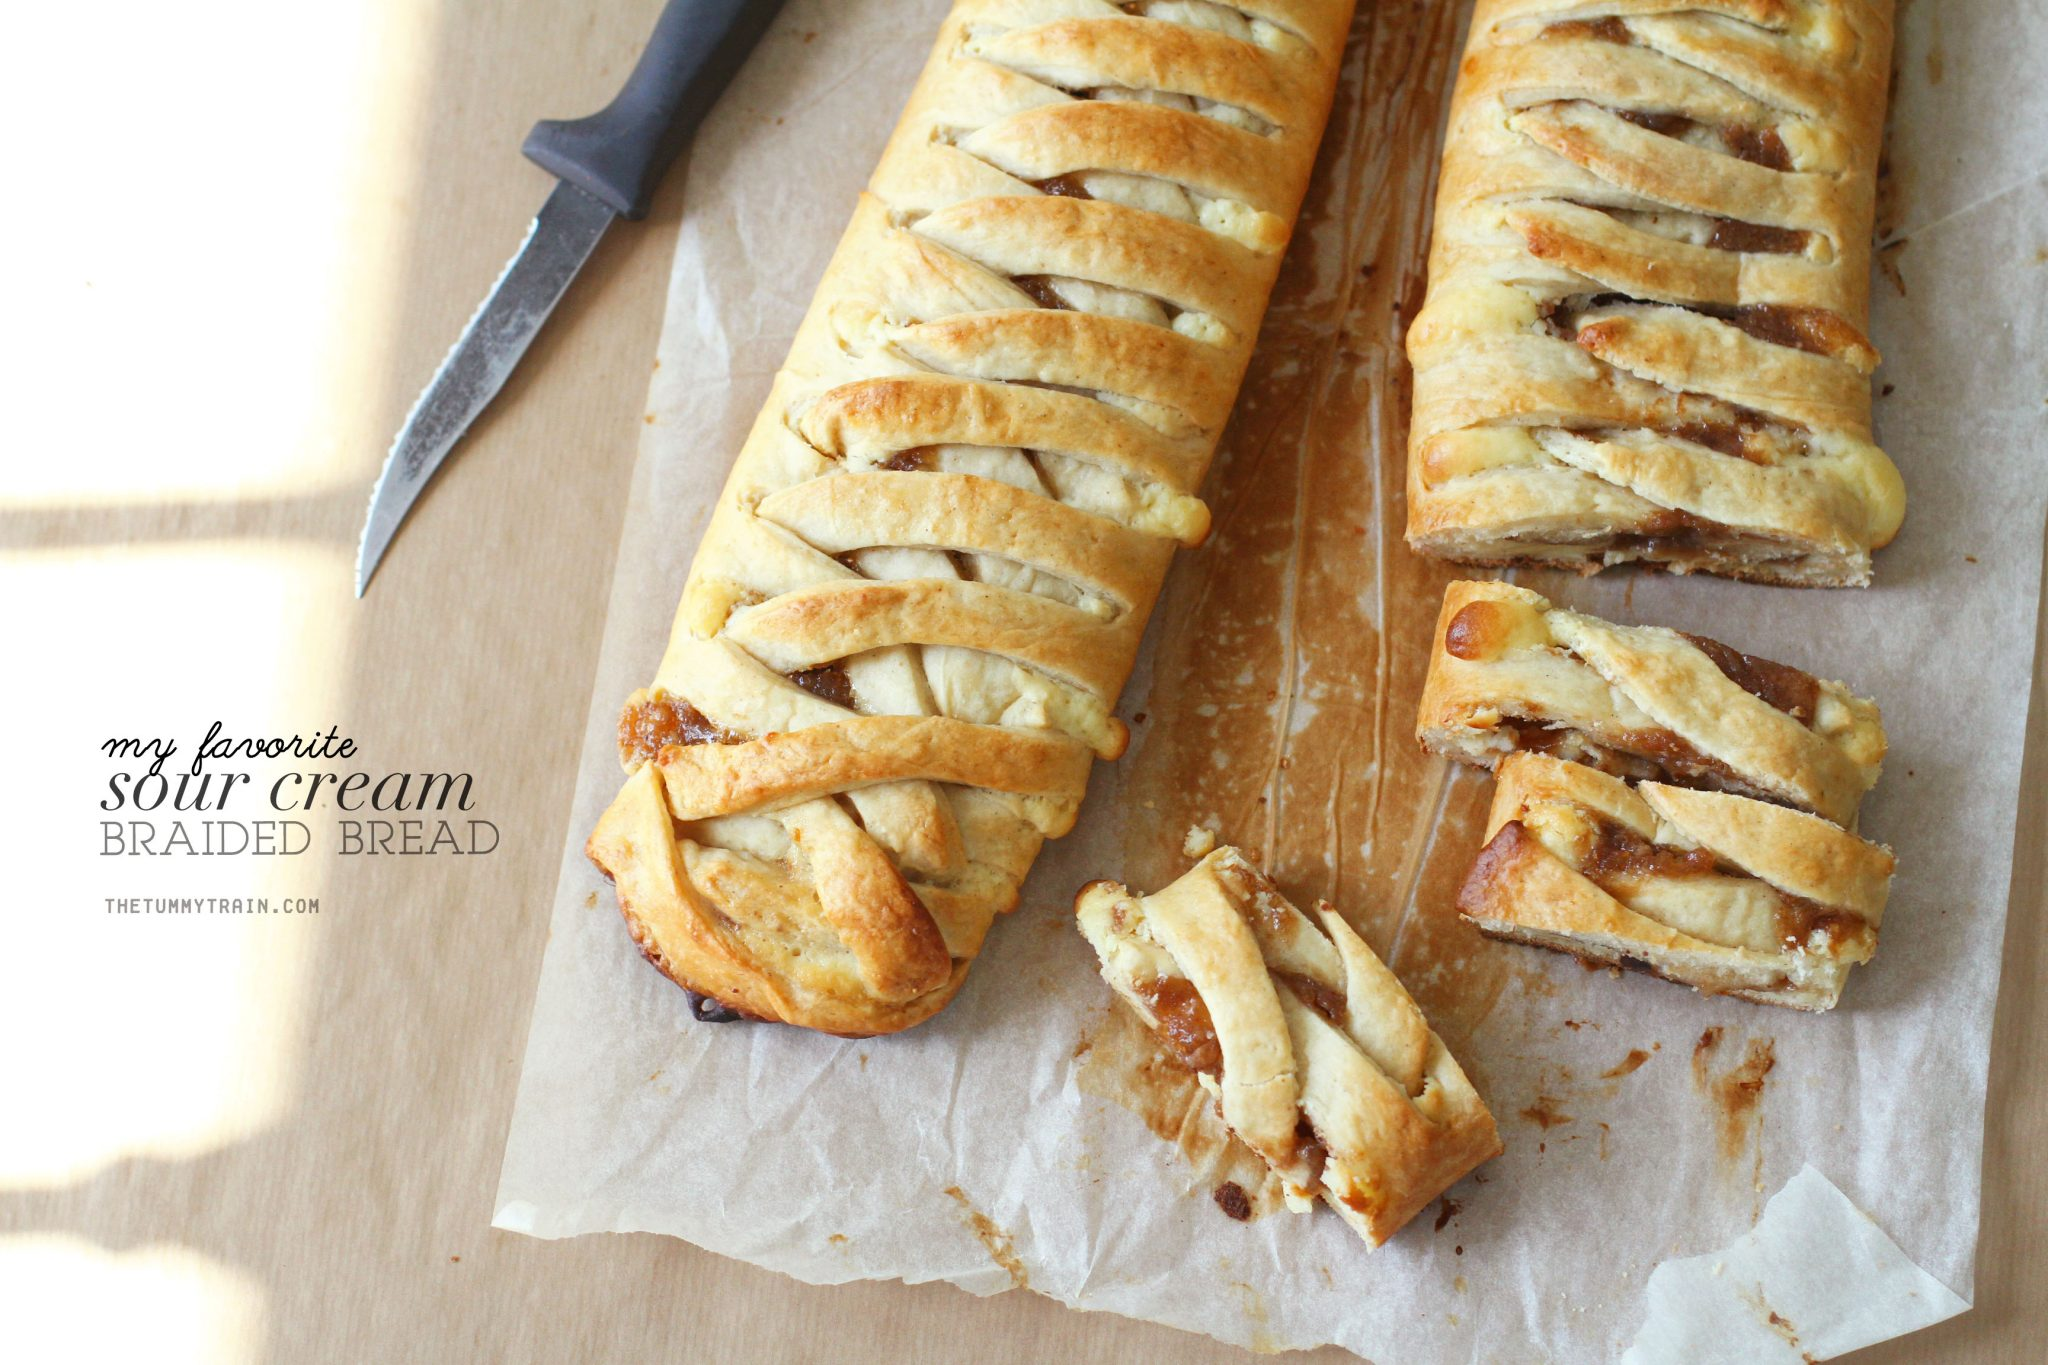 Braided Bread 1 - Contemplating a blogging break + my favorite Braided Bread recipe [VIDEO]